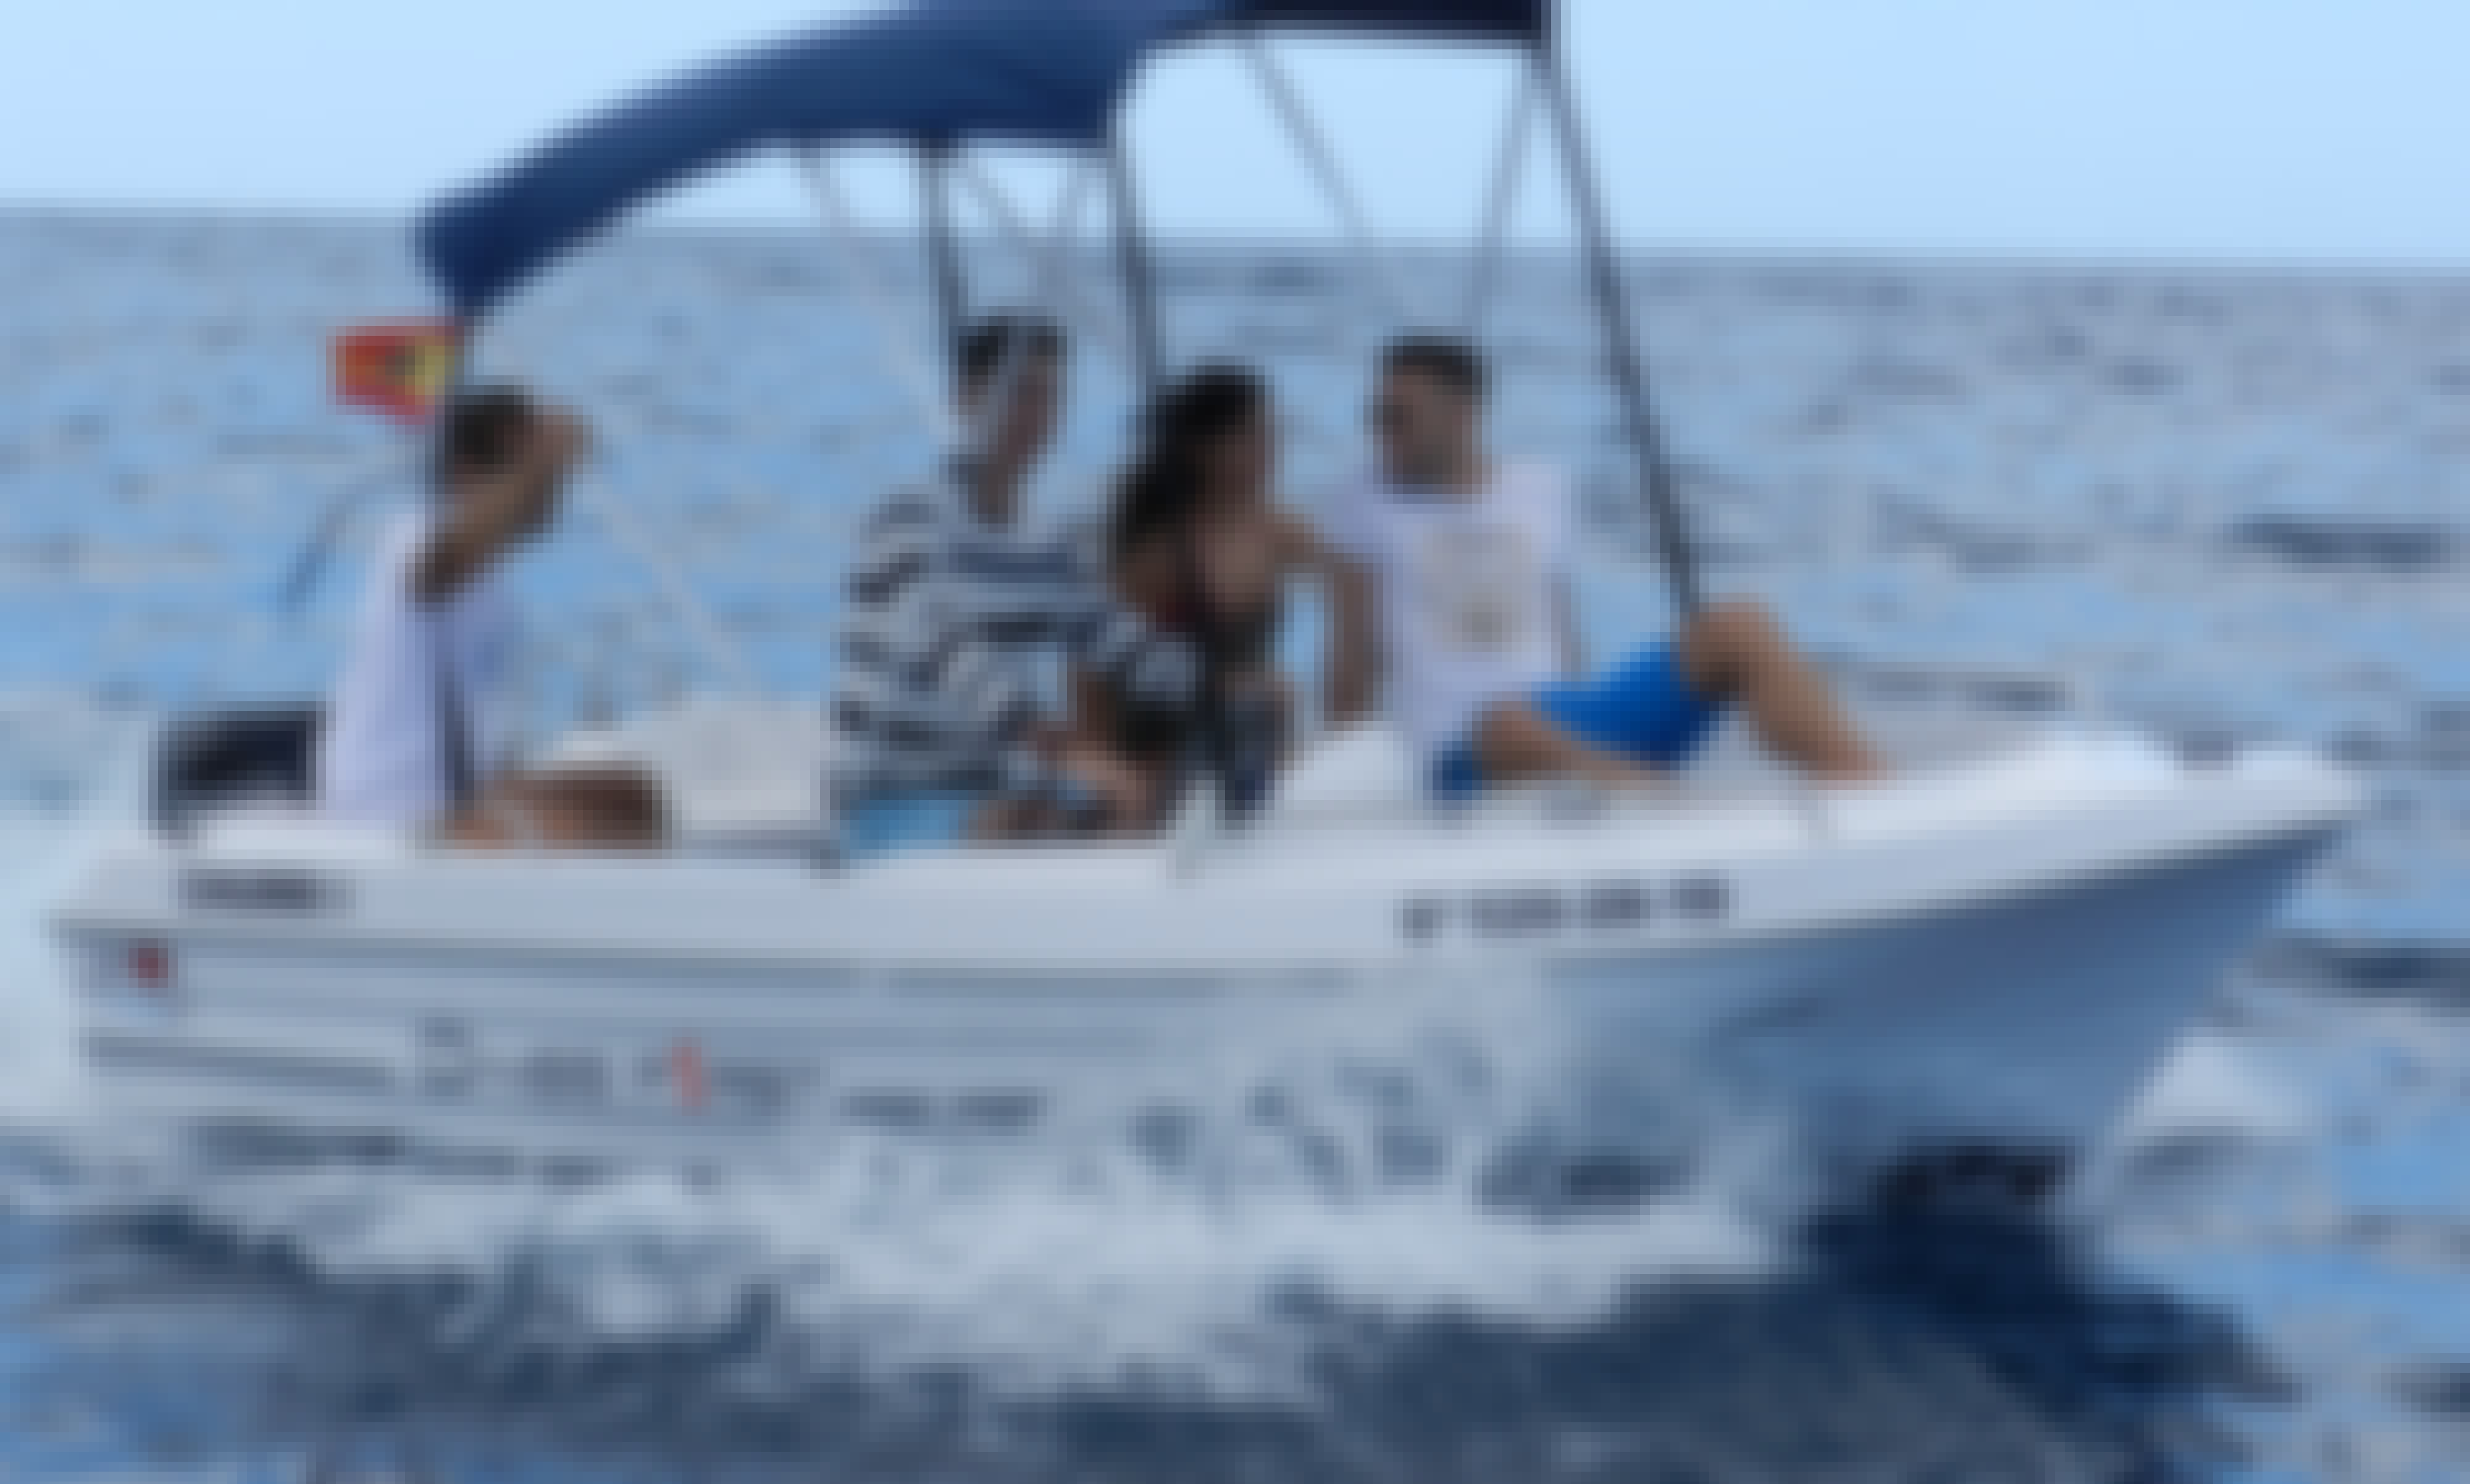 Rent this DIPOL D-400 F1RST Boat for 5 Guests in Puerto Colón, Costa Adeje Spain